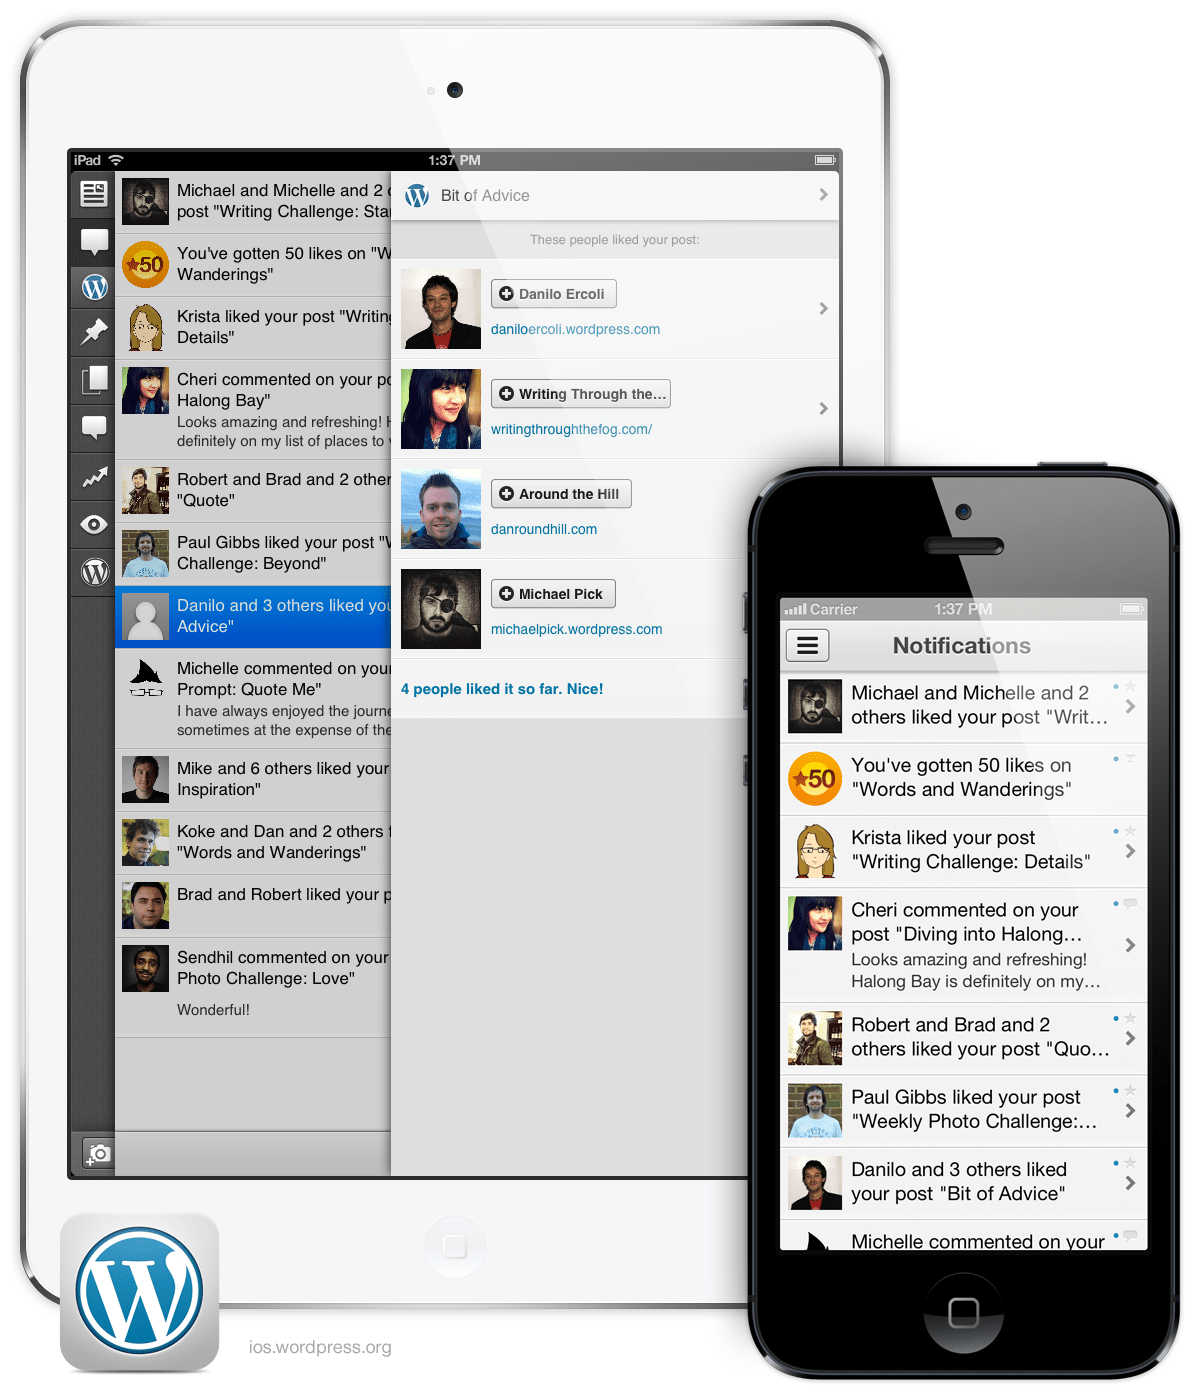 Version 3.4 of WordPress for iOS: Notifications, showing on iPad Mini and iPhone 5